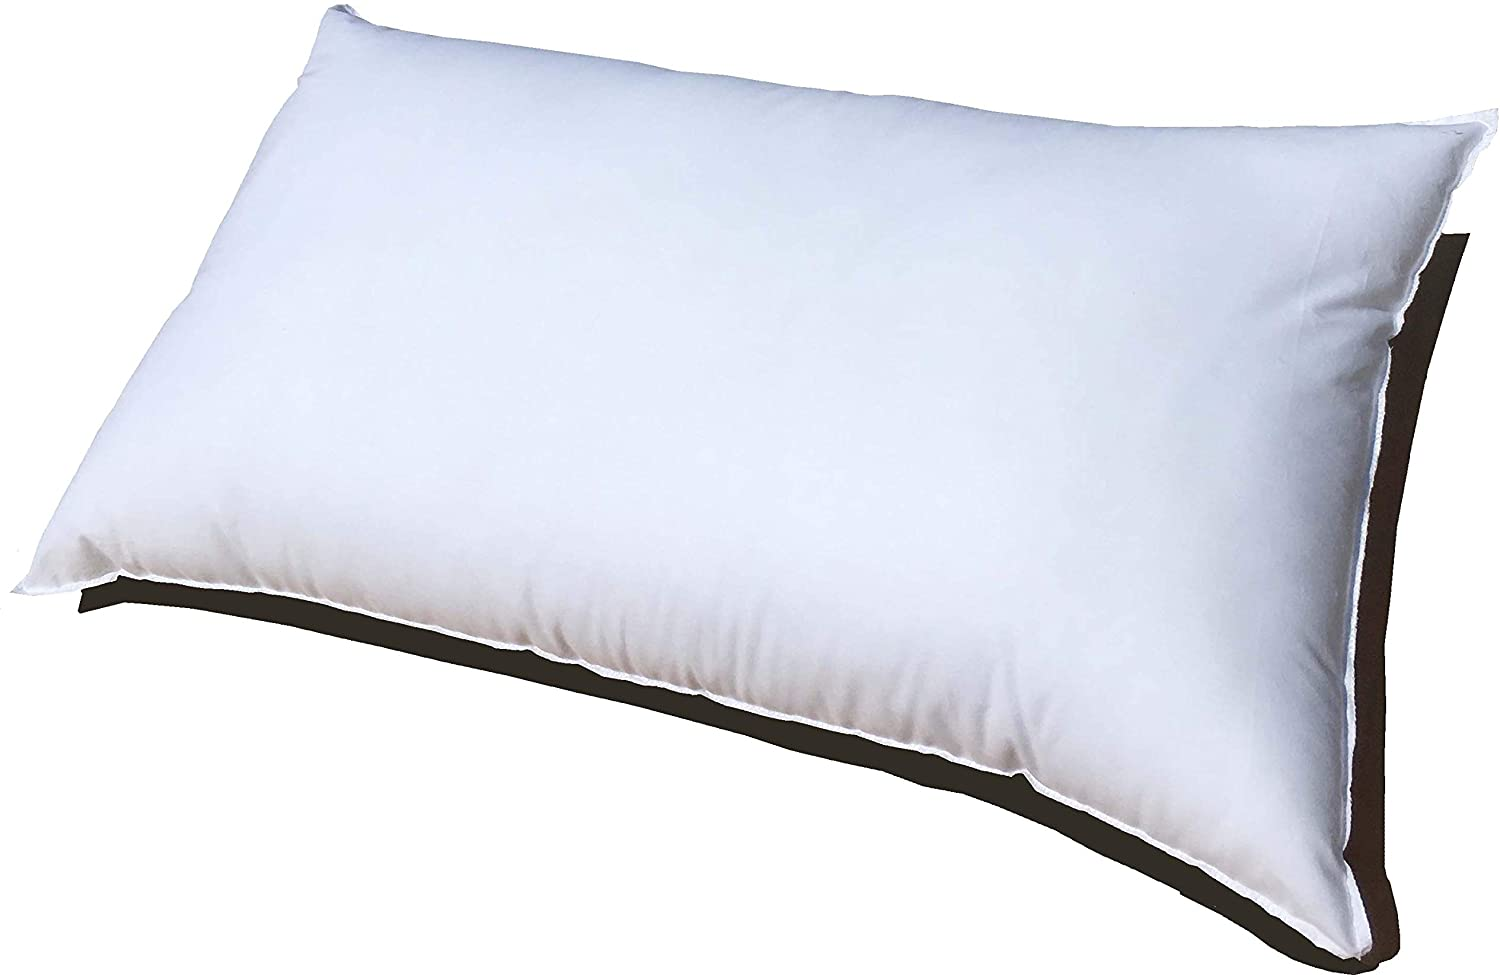 Pillowflex 16x20 Inch Premium Polyester Filled Pillow Form Insert - Machine Washable - Oblong Rectangle - Made in USA